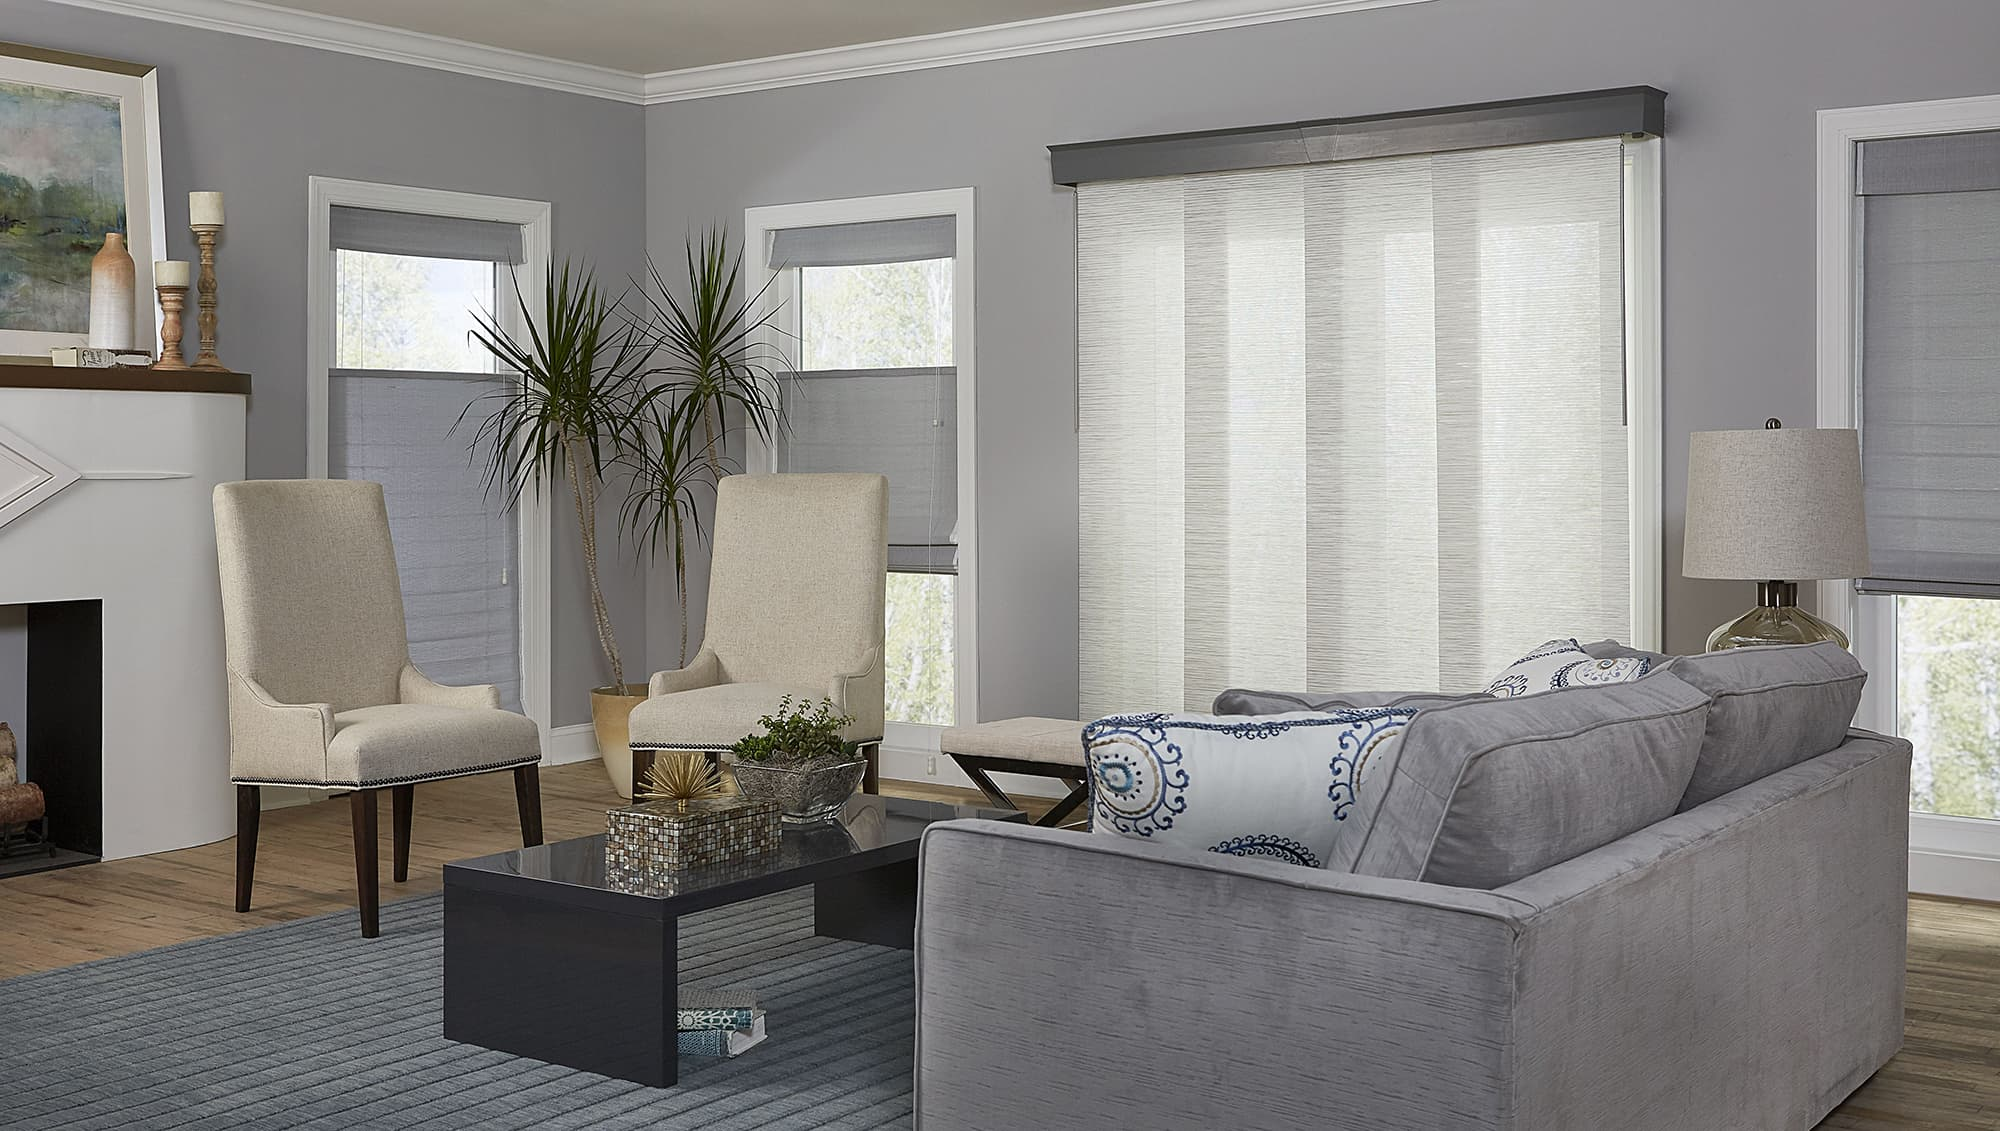 Merveilleux Sliding Panel Blinds Patio Door